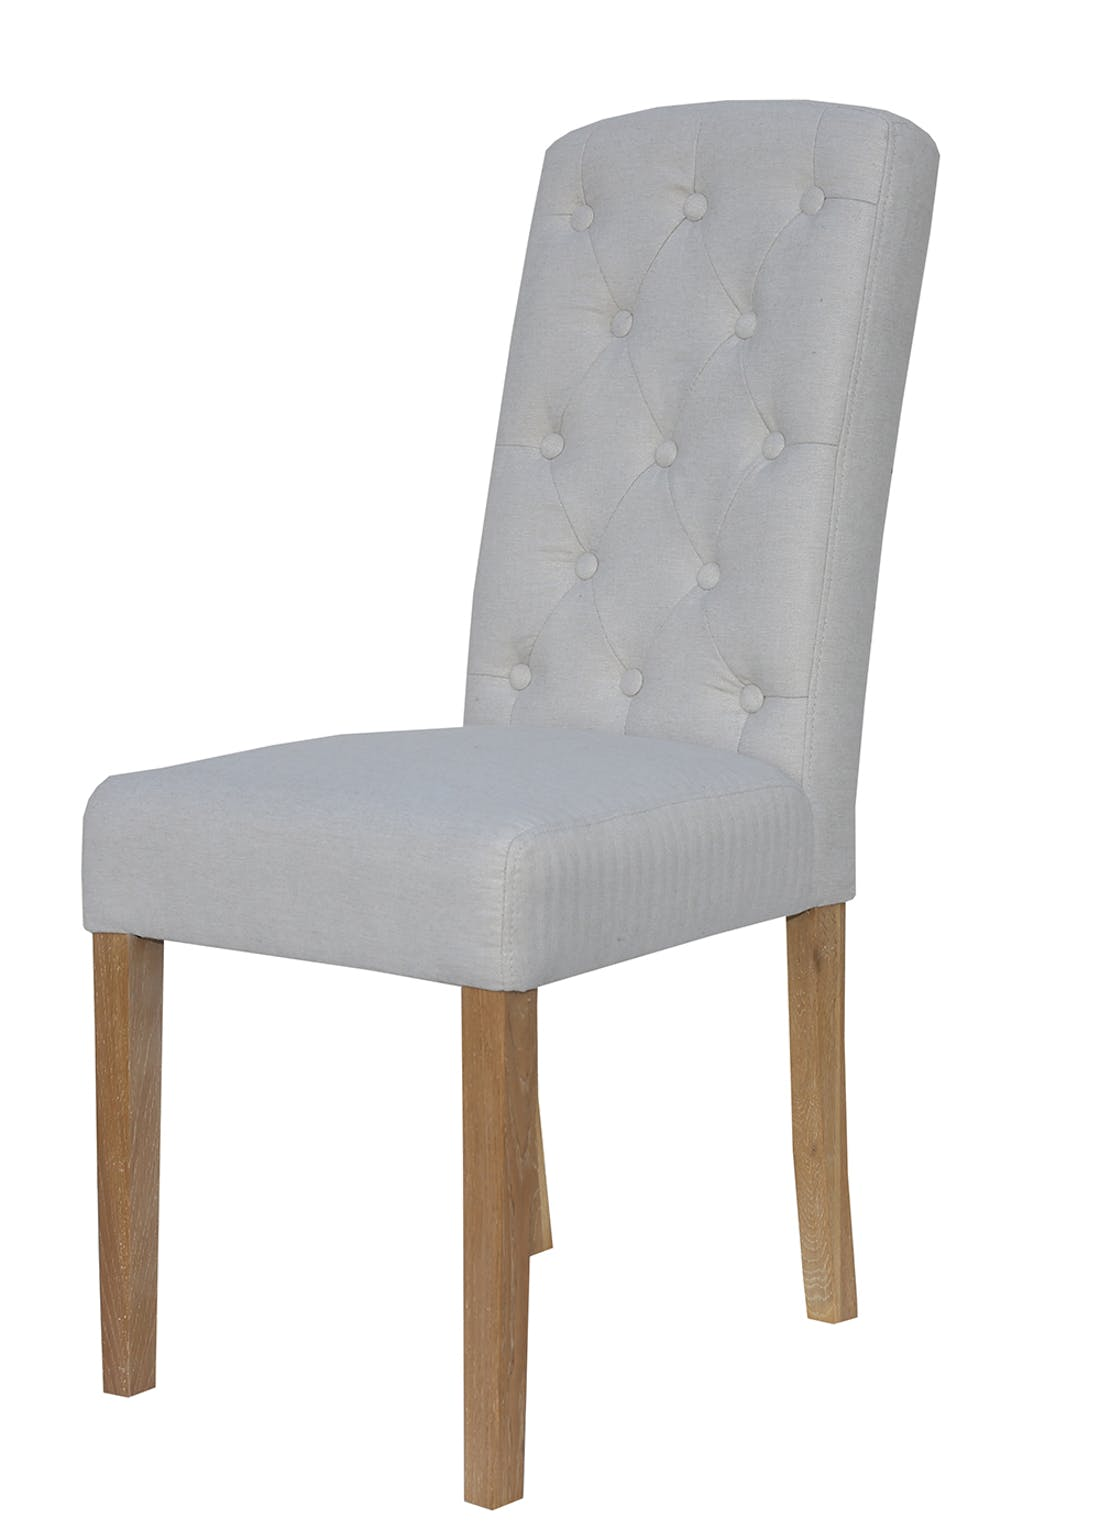 Interiors Direct 2 Pack Arundel Button Back Chairs (101cm x 62cm x 43cm)